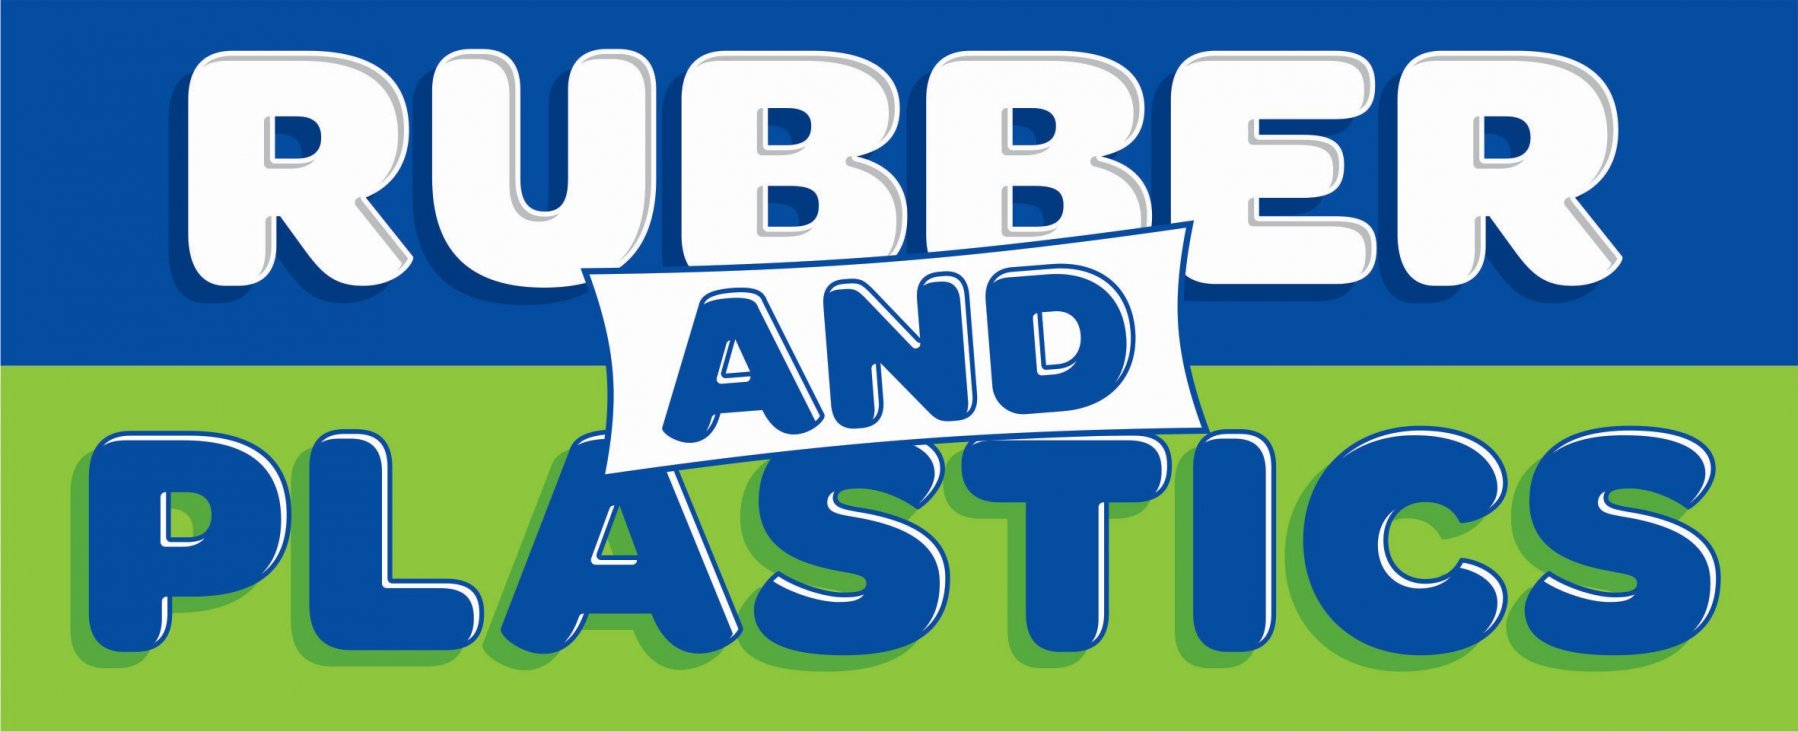 gallery/rubber and plastics - logo